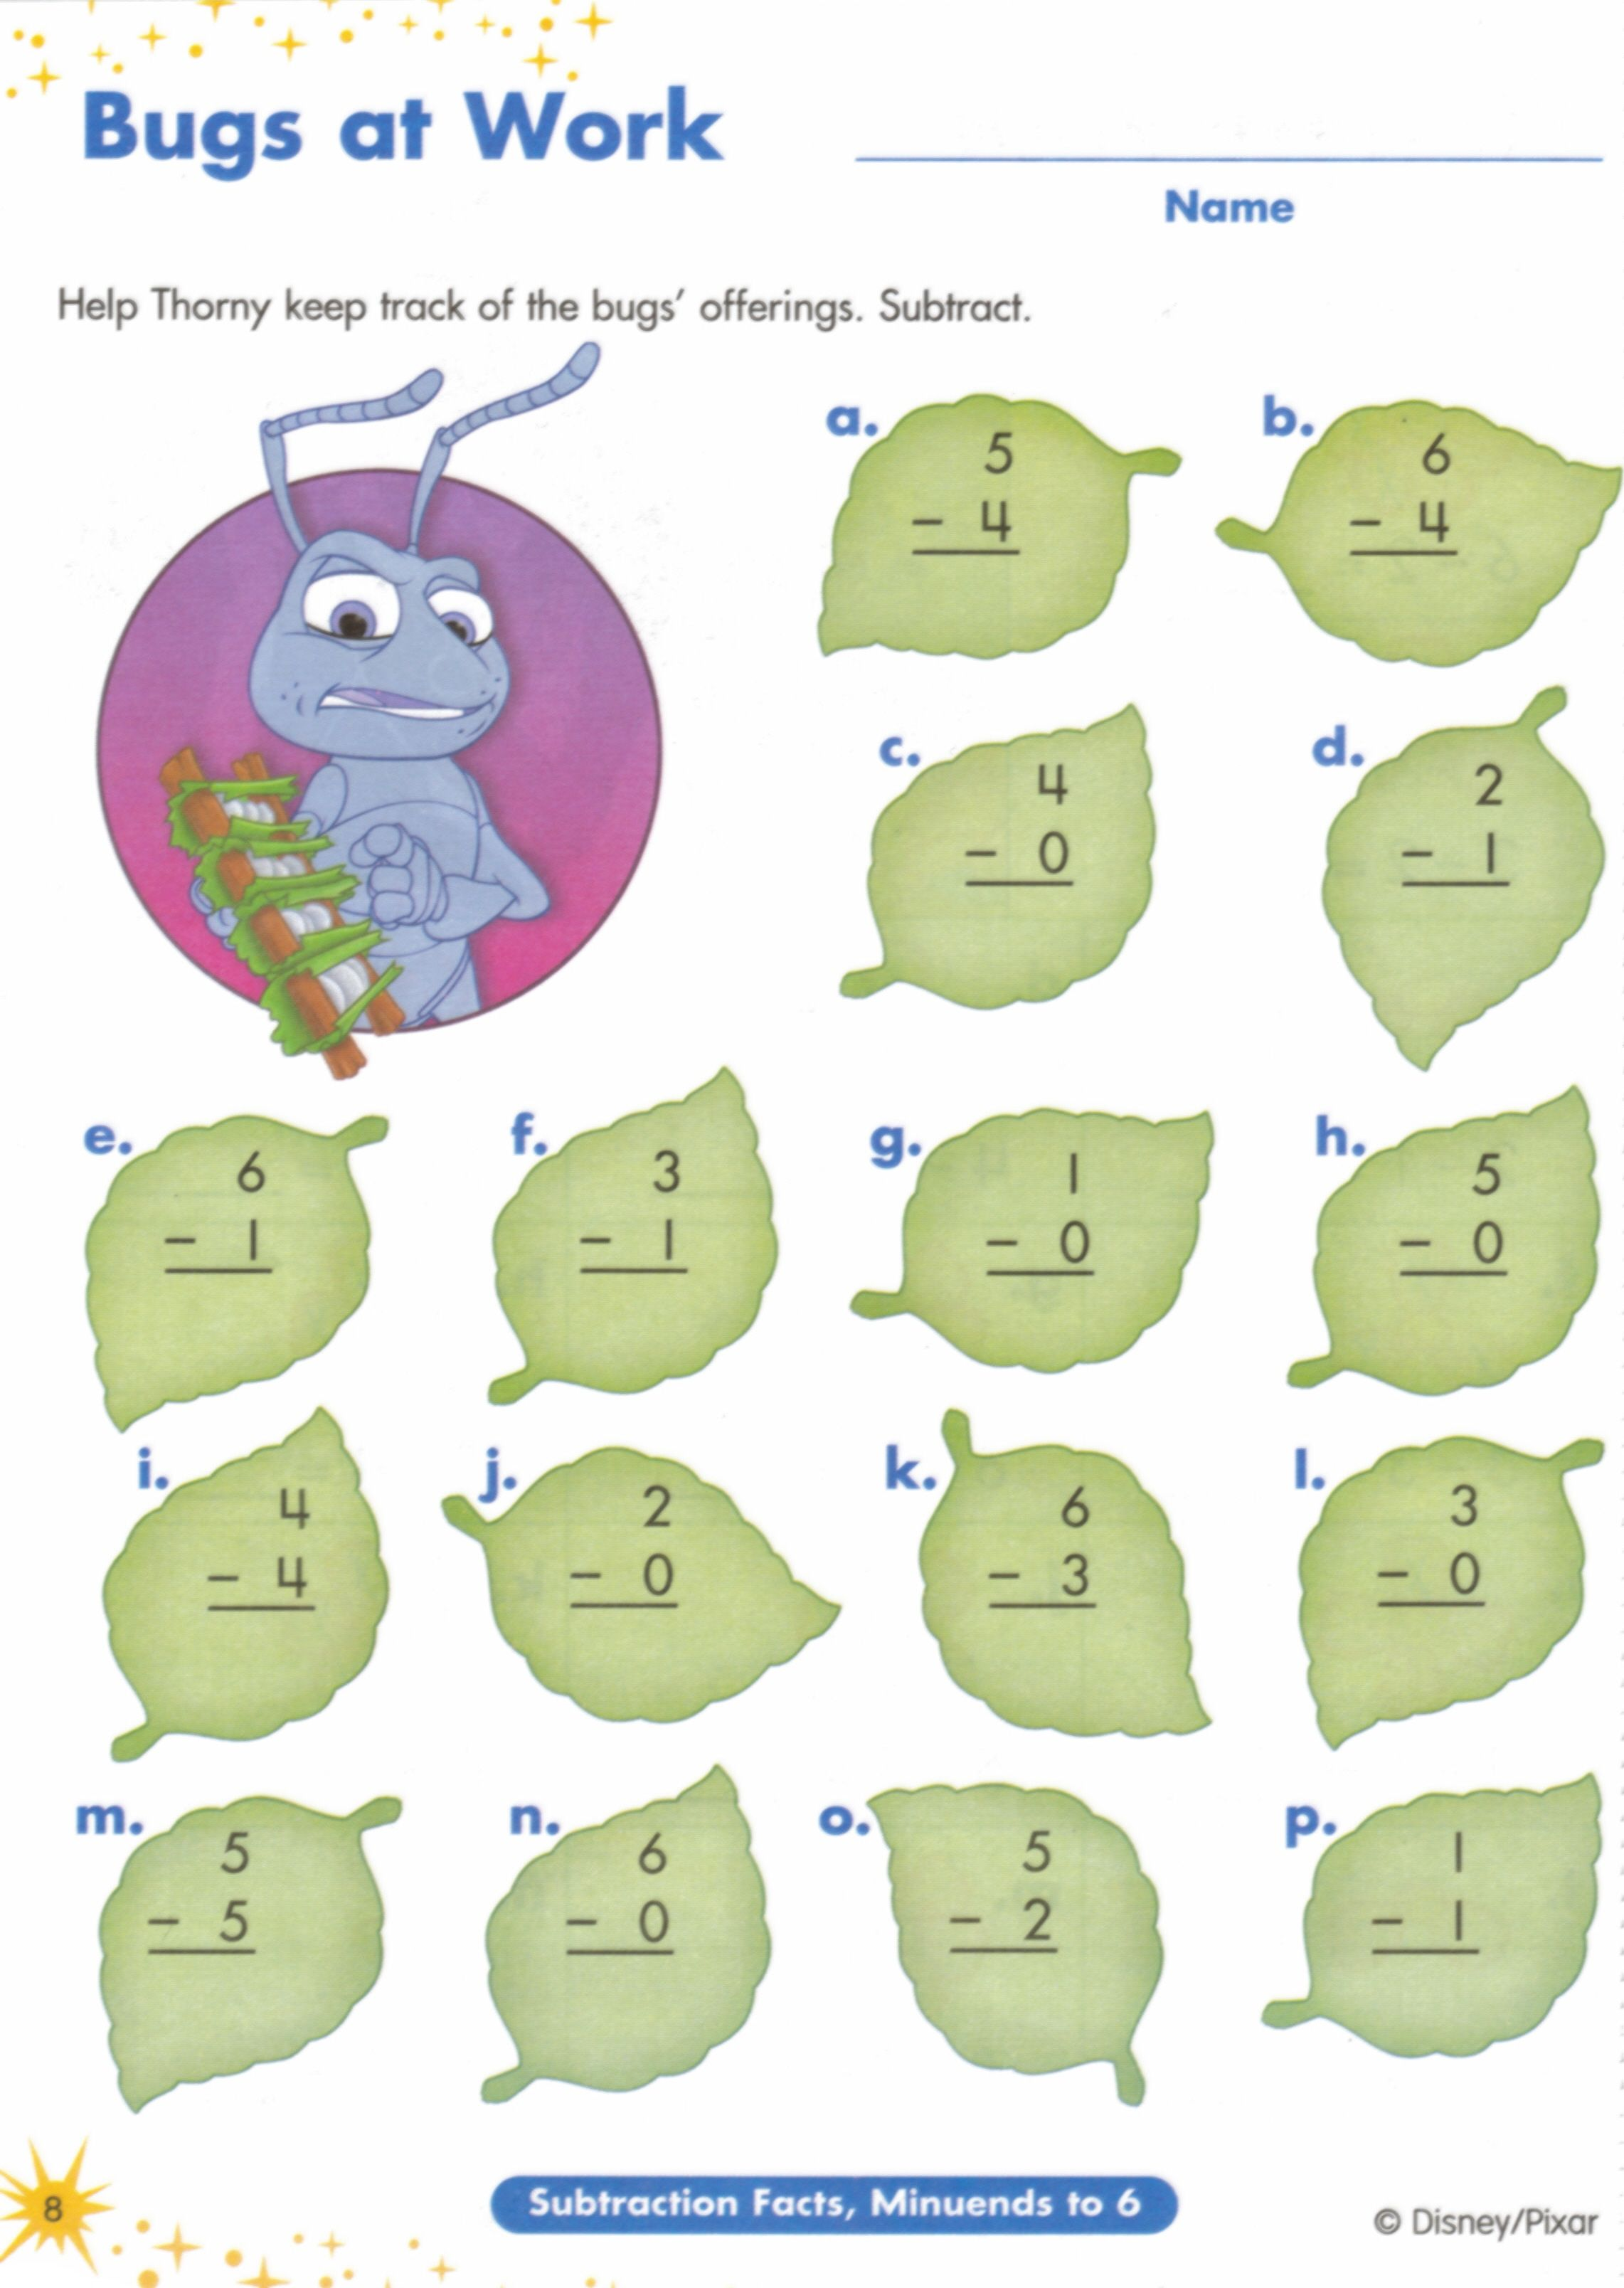 Proatmealus  Stunning  Images About Worksheets On Pinterest  Fun Facts For Kids  With Marvelous  Images About Worksheets On Pinterest  Fun Facts For Kids Earth Day Worksheets And Jungles With Astounding Latin And Greek Roots Worksheets Also To Too Two Worksheets In Addition Bass Clef Notes Worksheet And Rock Worksheet As Well As Right Triangle Word Problems Worksheet Additionally Multiplication With Decimals Worksheets From Pinterestcom With Proatmealus  Marvelous  Images About Worksheets On Pinterest  Fun Facts For Kids  With Astounding  Images About Worksheets On Pinterest  Fun Facts For Kids Earth Day Worksheets And Jungles And Stunning Latin And Greek Roots Worksheets Also To Too Two Worksheets In Addition Bass Clef Notes Worksheet From Pinterestcom